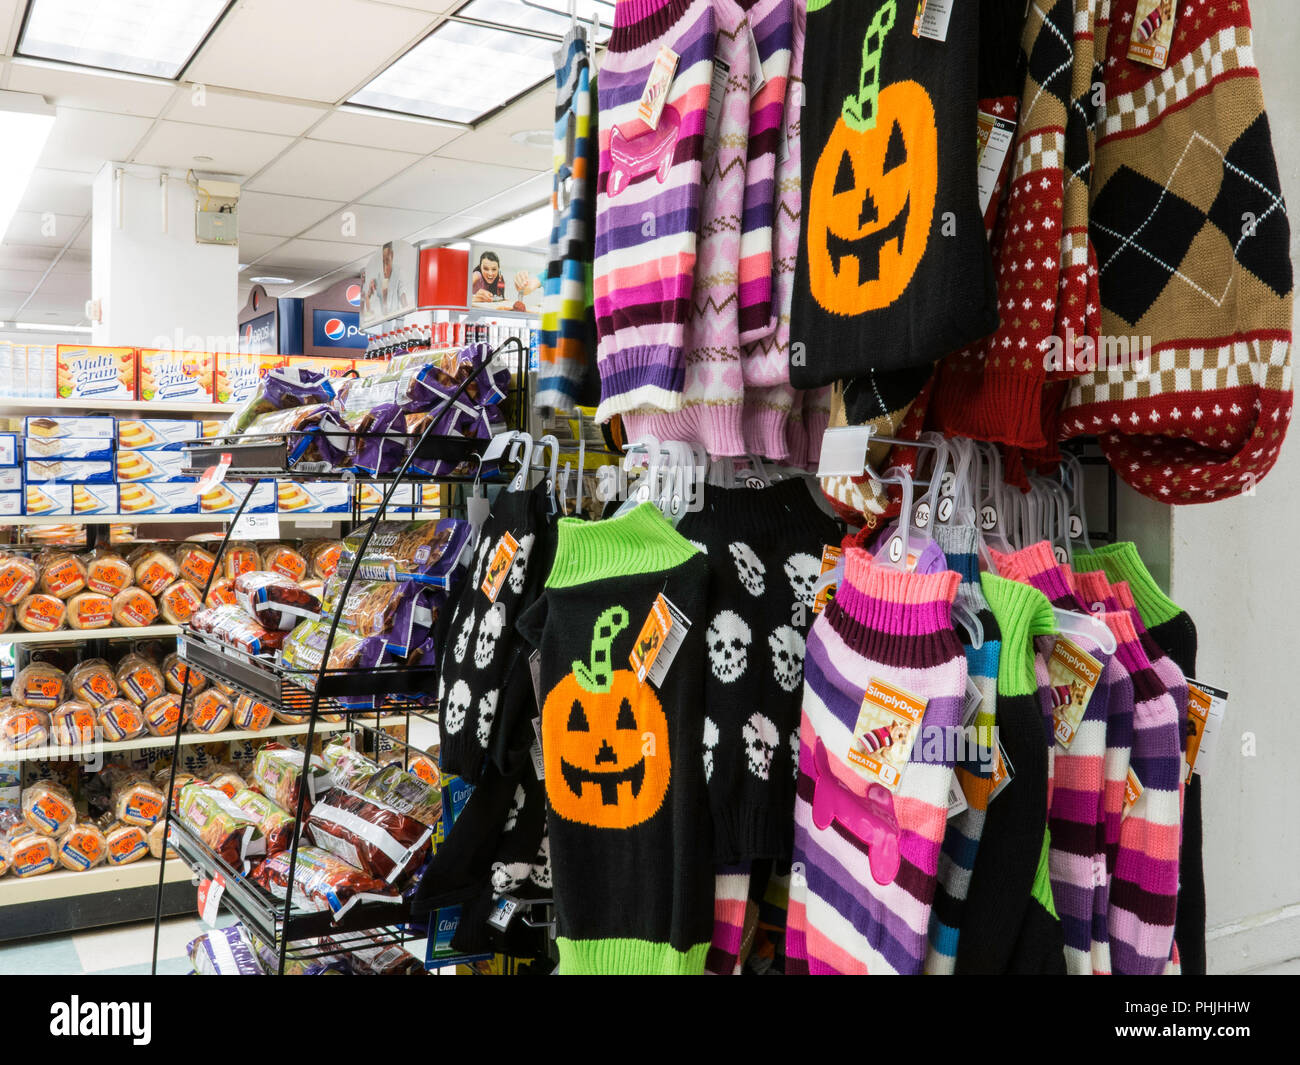 halloween display, nyc, usa stock photo: 217382533 - alamy